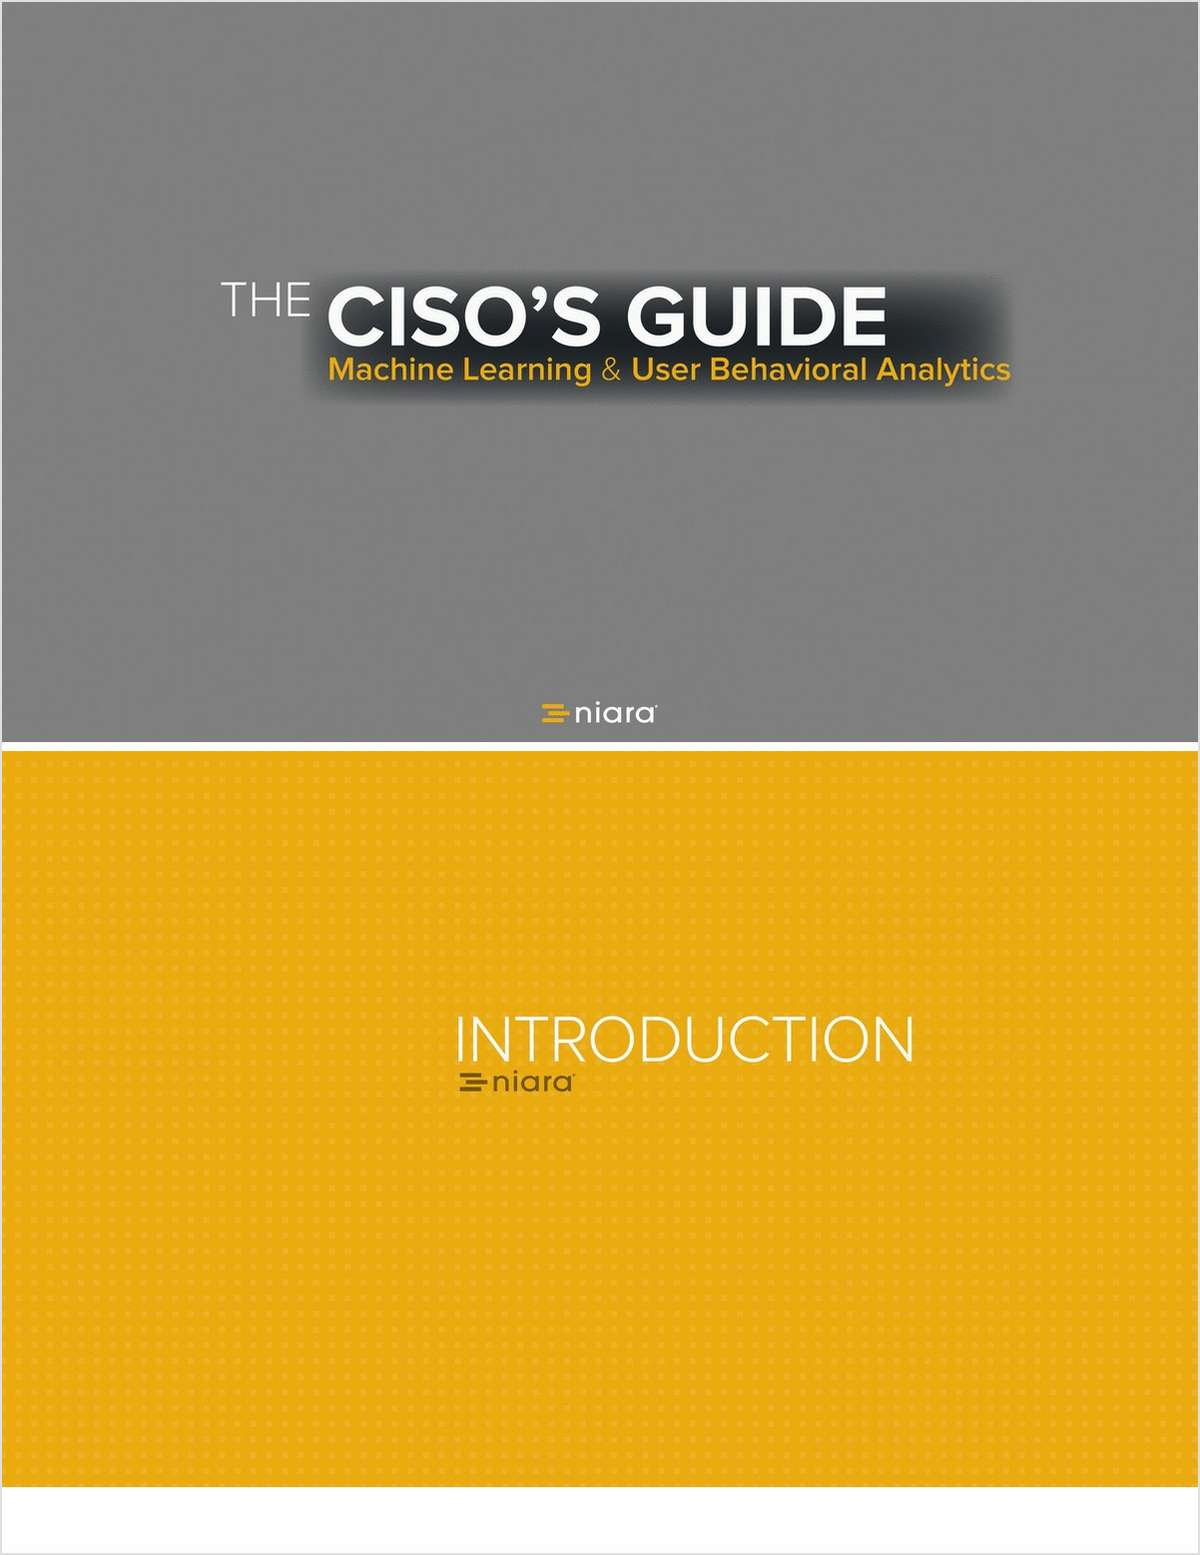 The CISO's Guide to Machine Learning and UBA